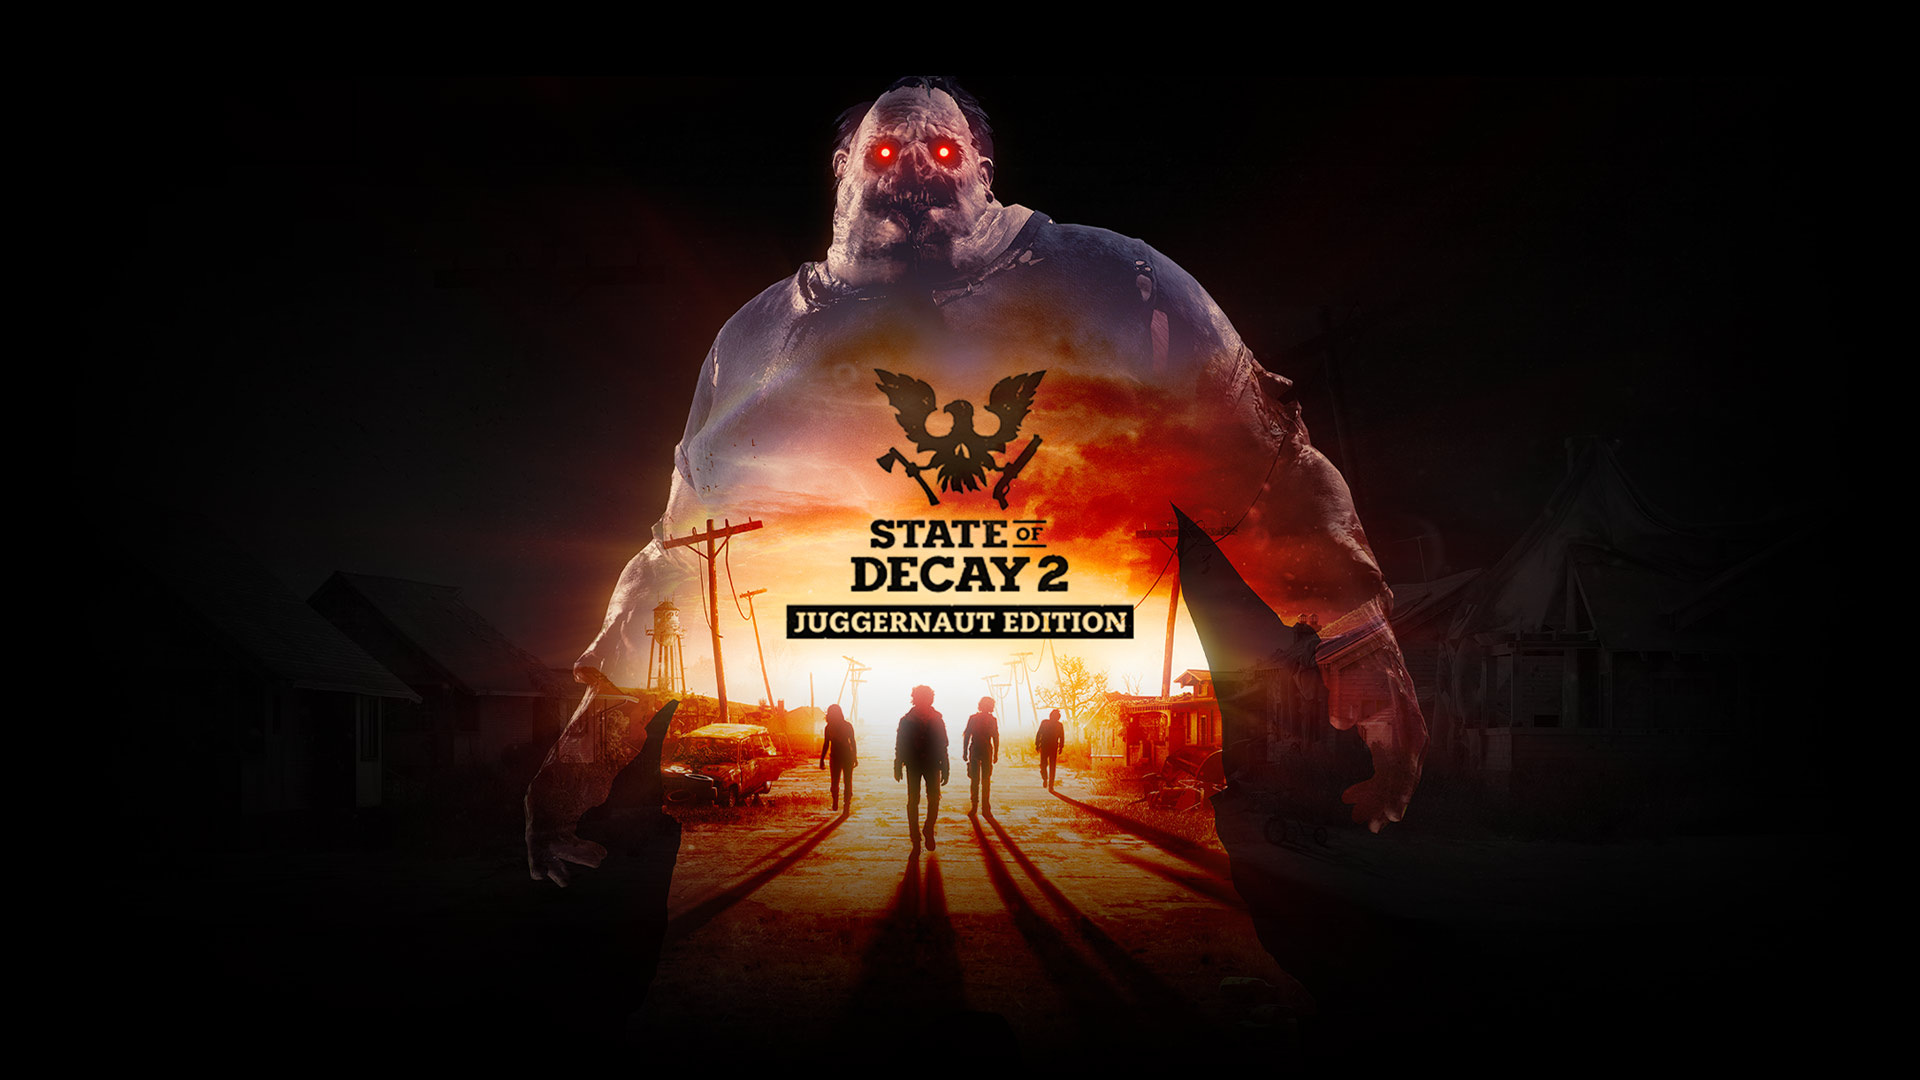 State of Decay 2: Juggernaut Edition, silhouette of the Juggernaut with zombies on an abandoned street